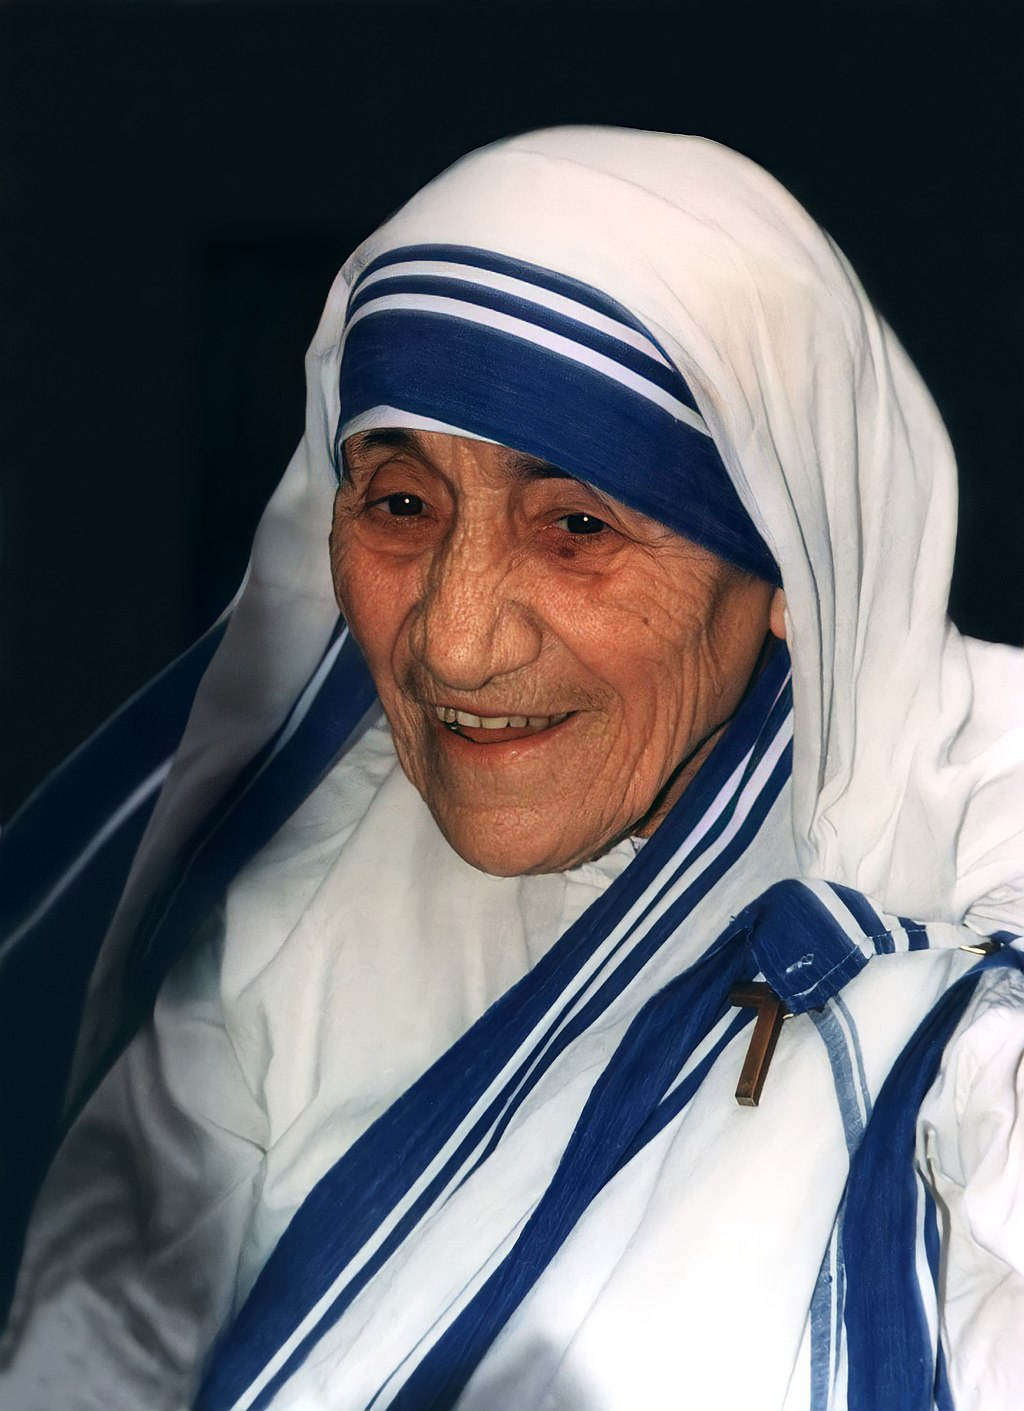 Mother Teresa - an uncommon Charismatic leader